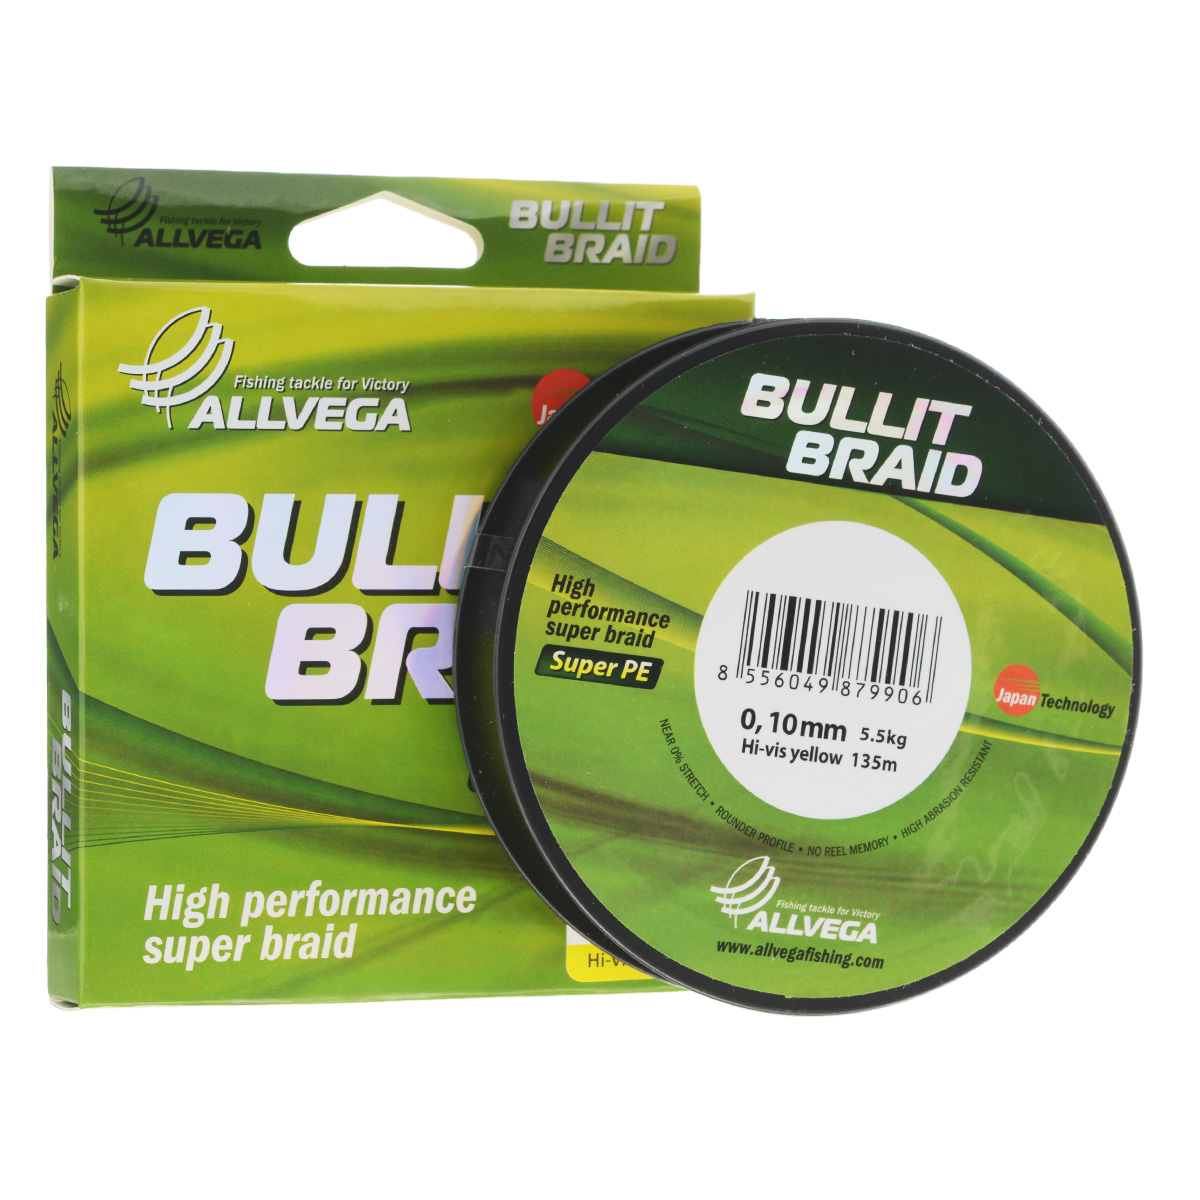 Леска плетеная Allvega Bullit Braid, цвет: ярко-желтый, 135 м, 0,10 мм, 5,5 кг